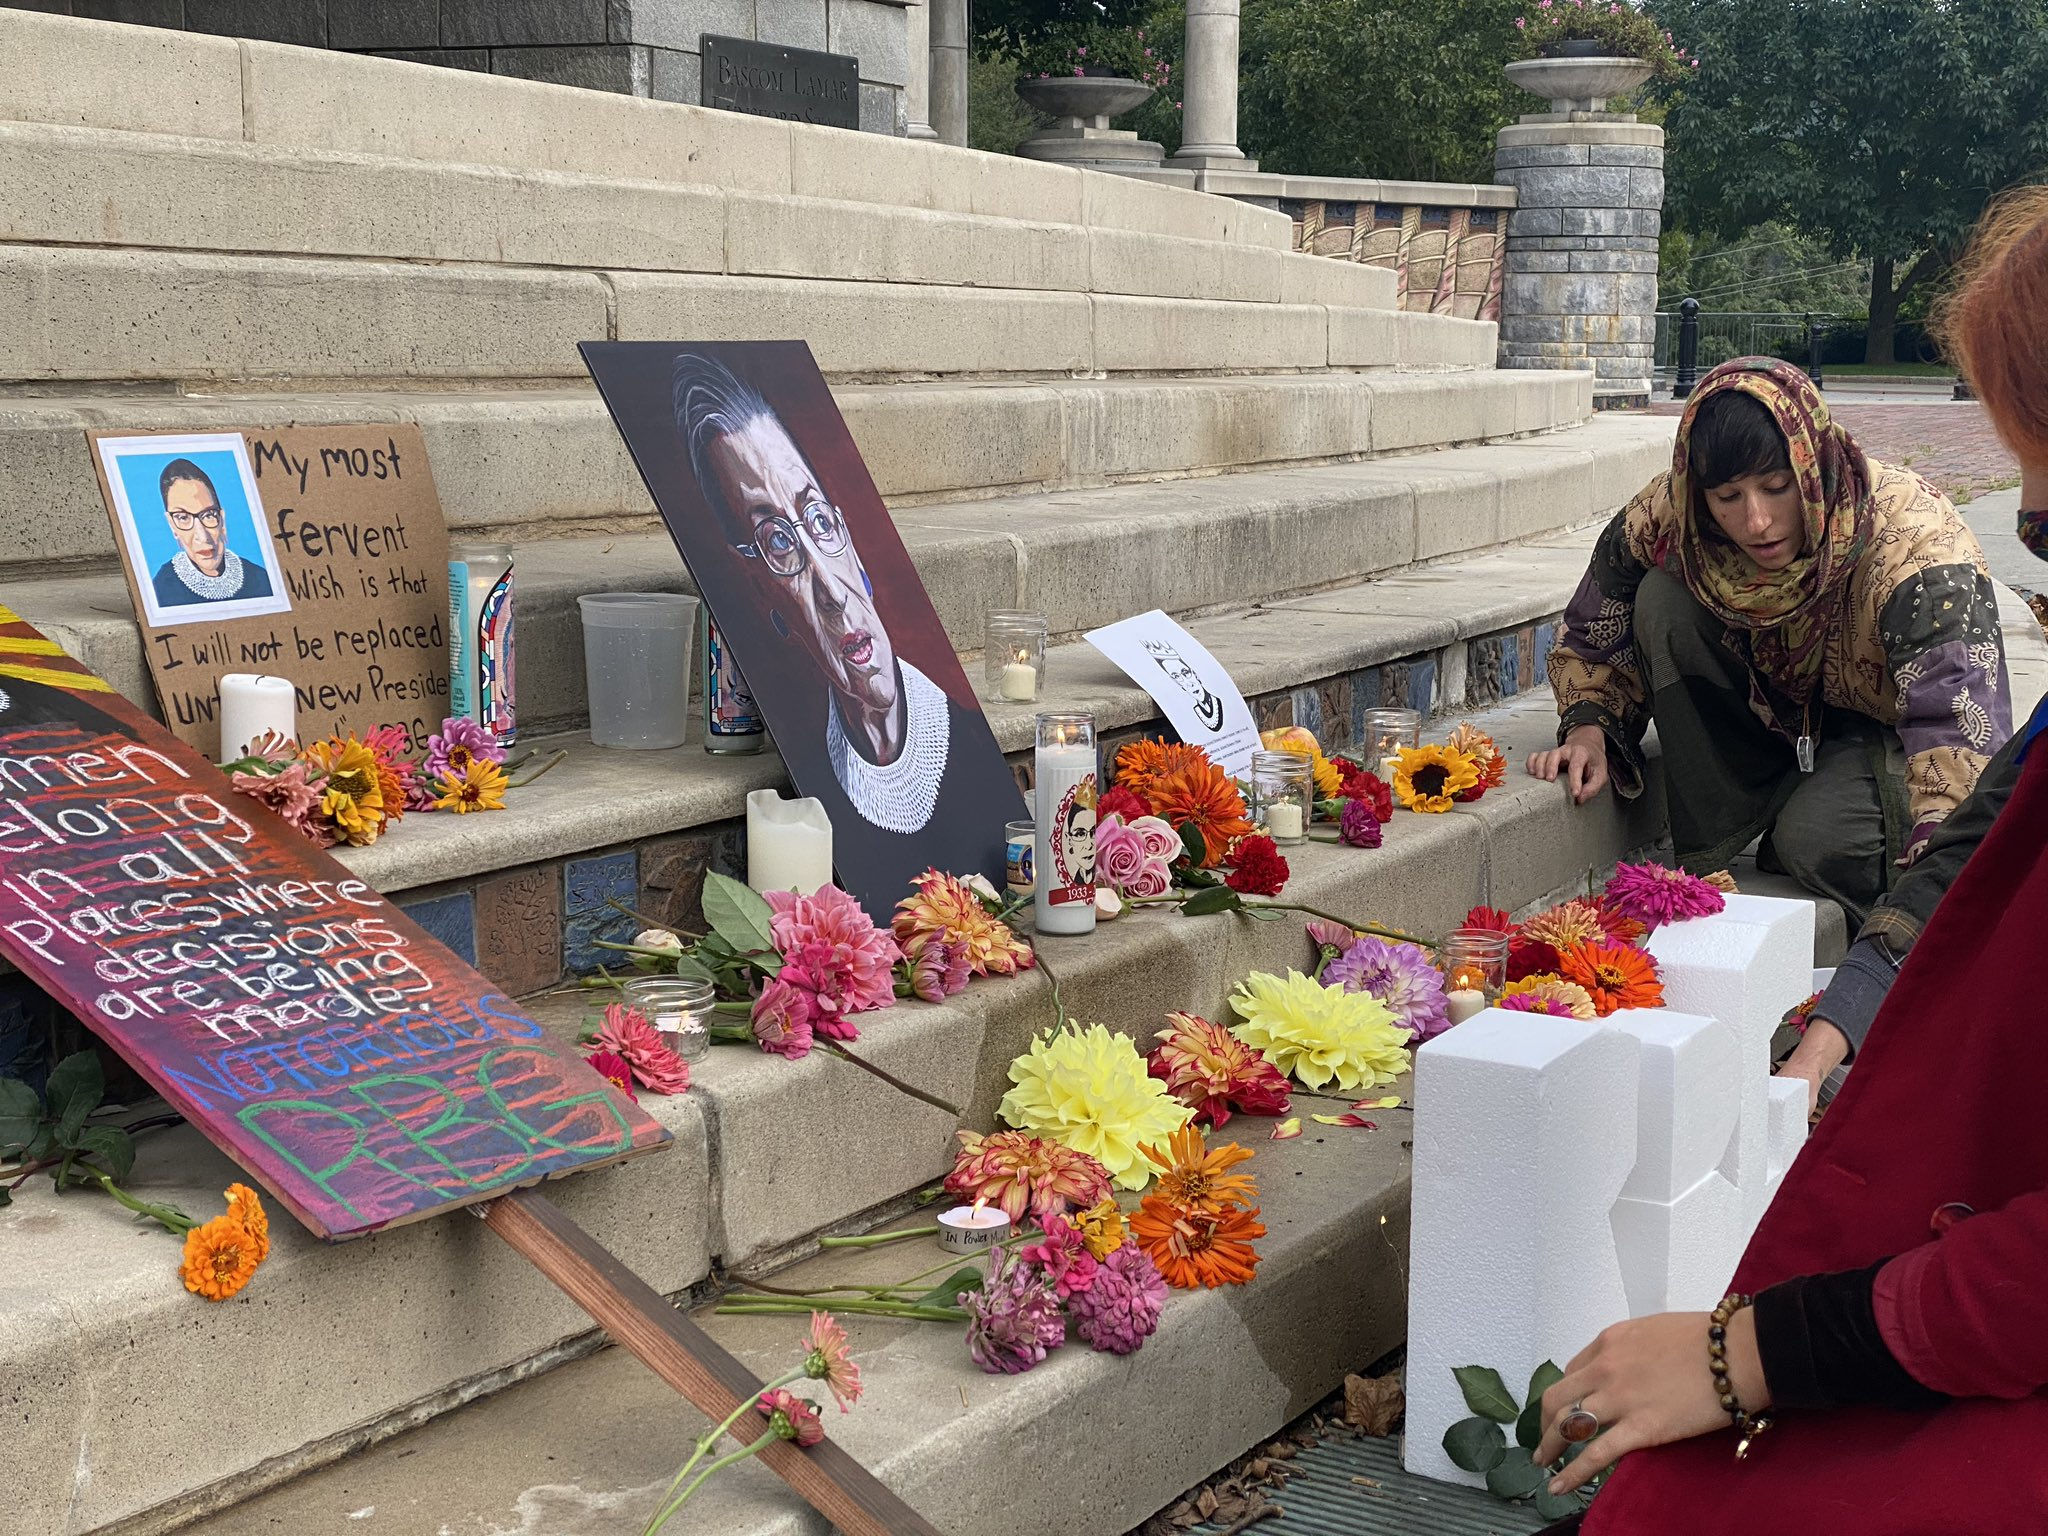 Sept. 19, 2020 - A group of people gather in downtown Asheville to remember the life and legacy of Justice Ruth Bader Ginsburg. (Photo credit: WLOS Staff)